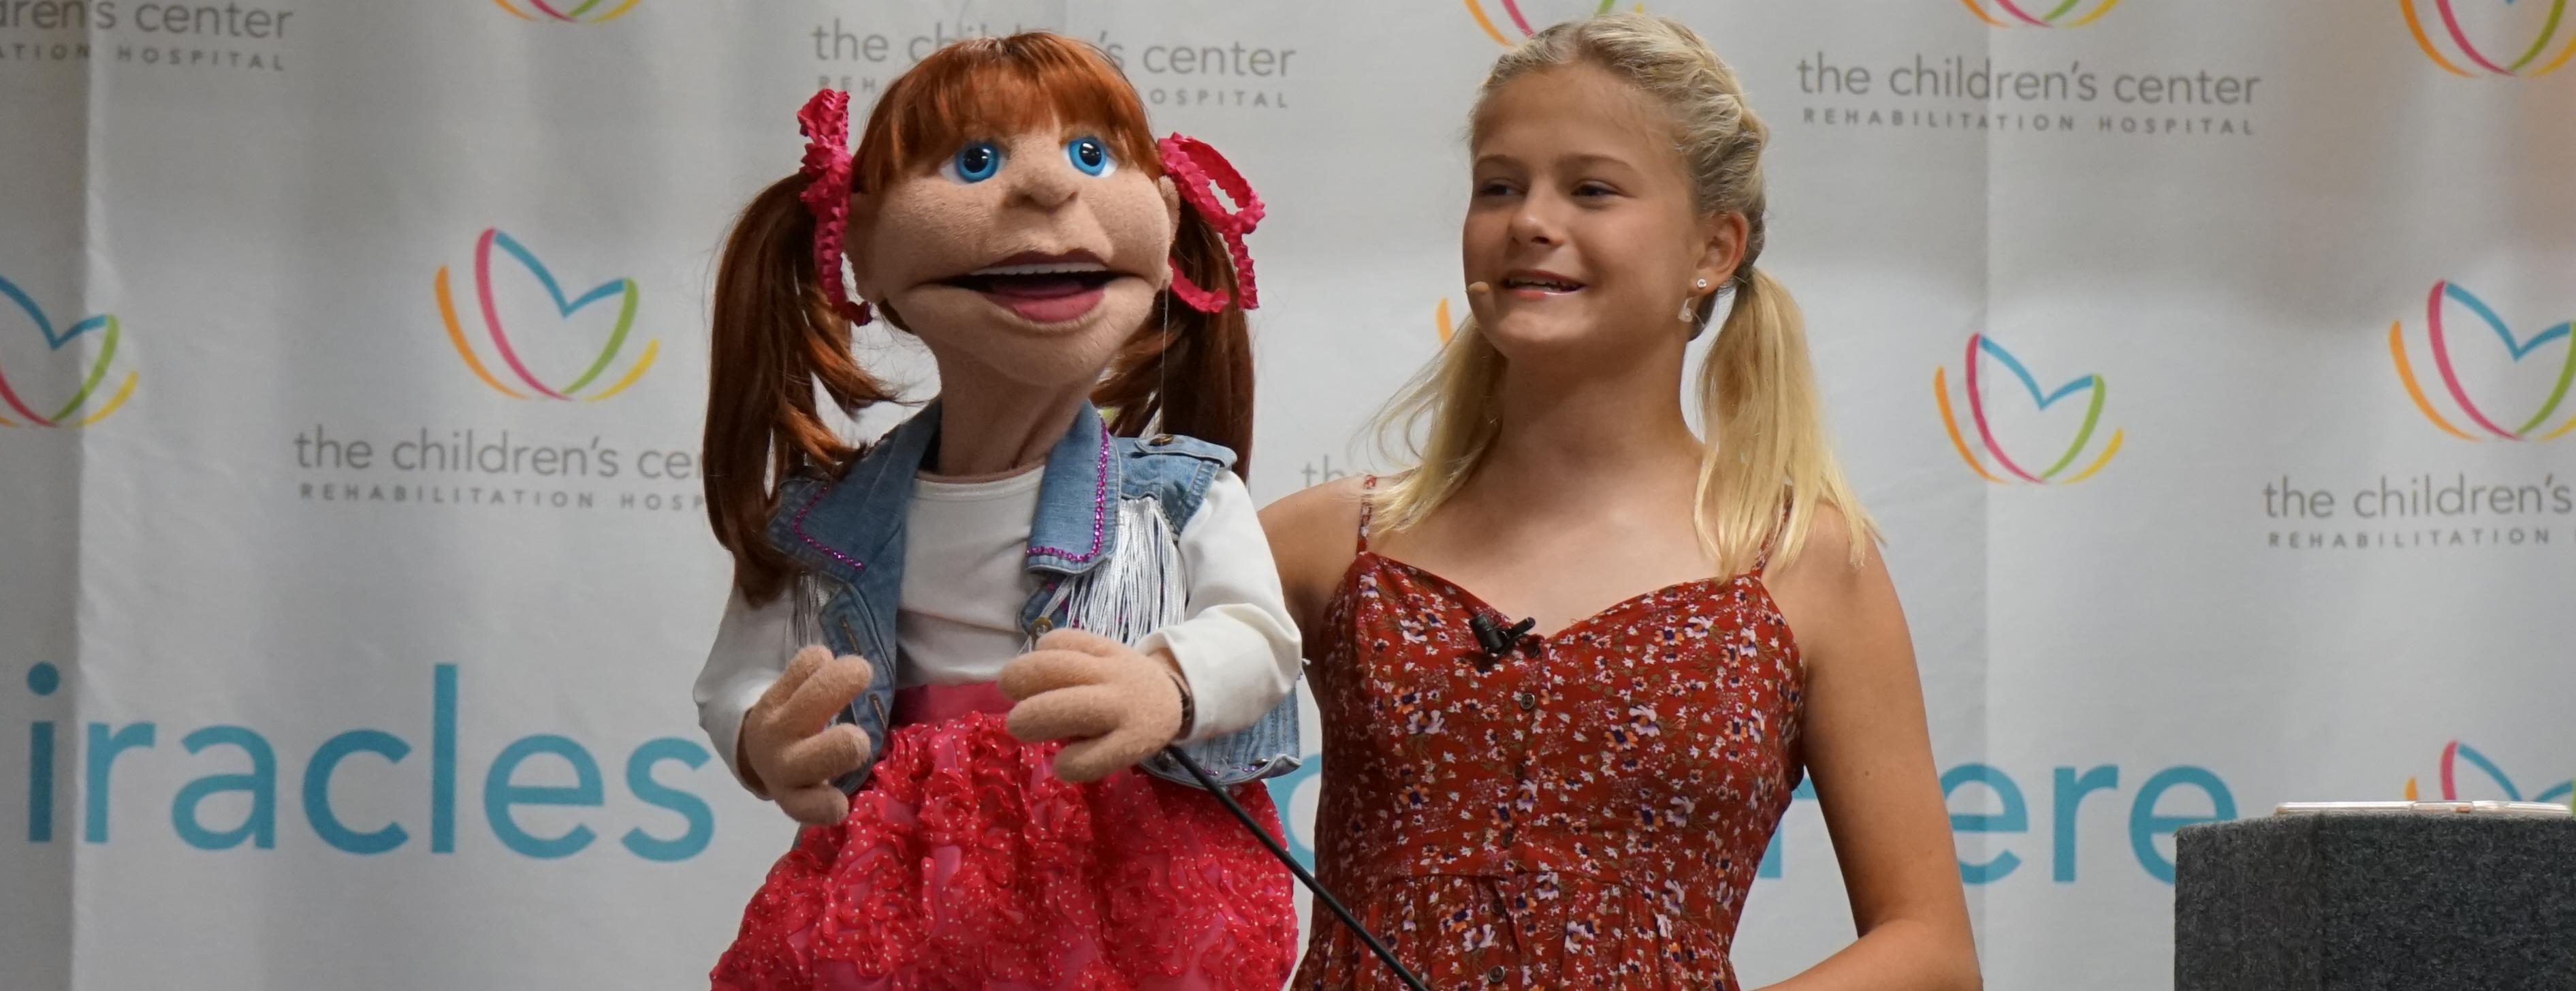 Darci Lynne Performs for Patients